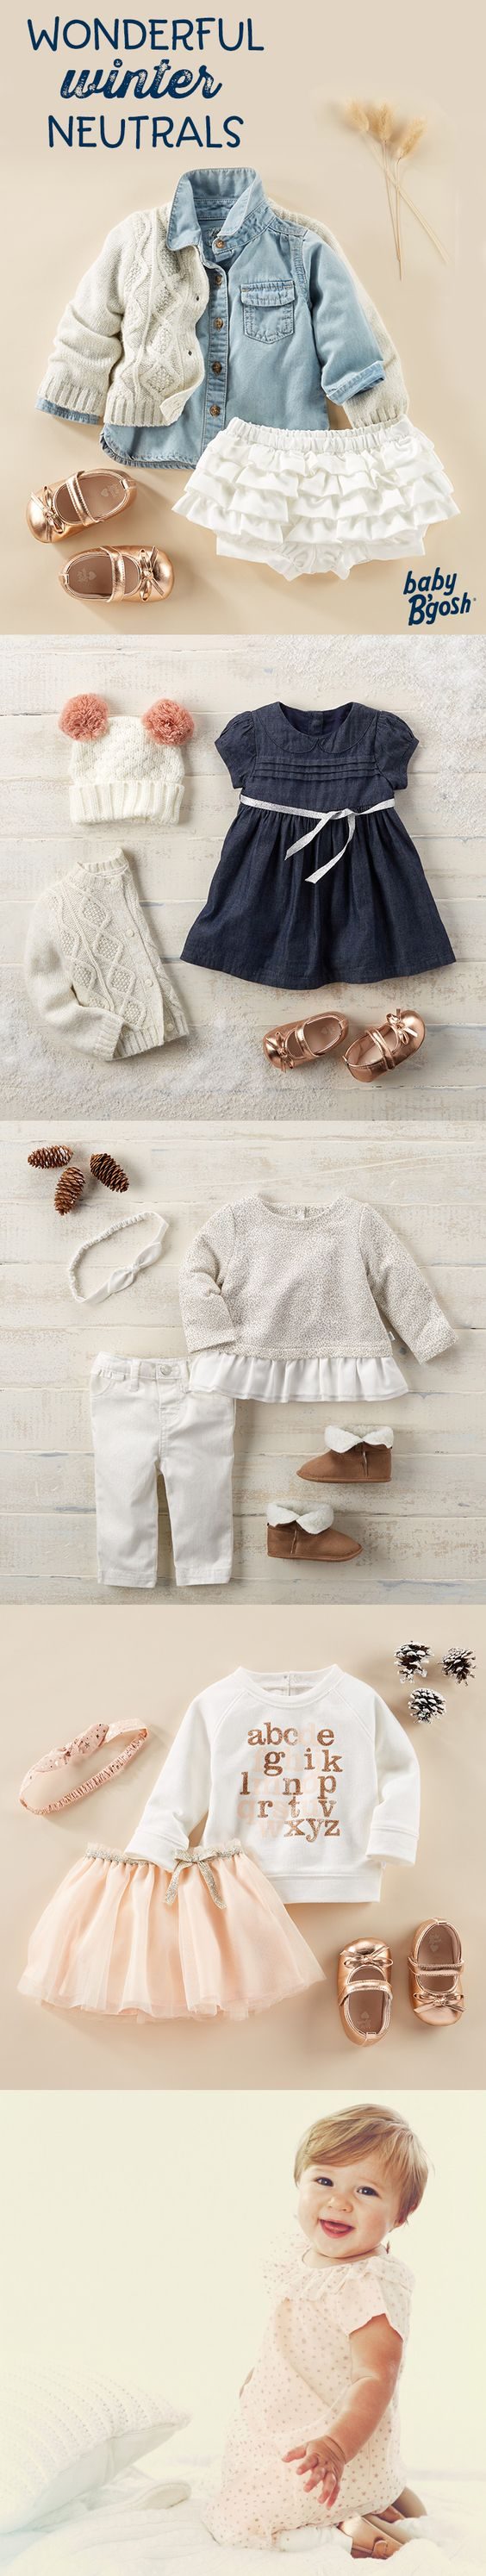 WONDERFUL WINTER NEUTRALS: A little pink and a lot of love goes into these looks from Baby B'gosh. Add a festive touch with tiny metallic ballet flats! For more winter neutrals, visit OshKosh.